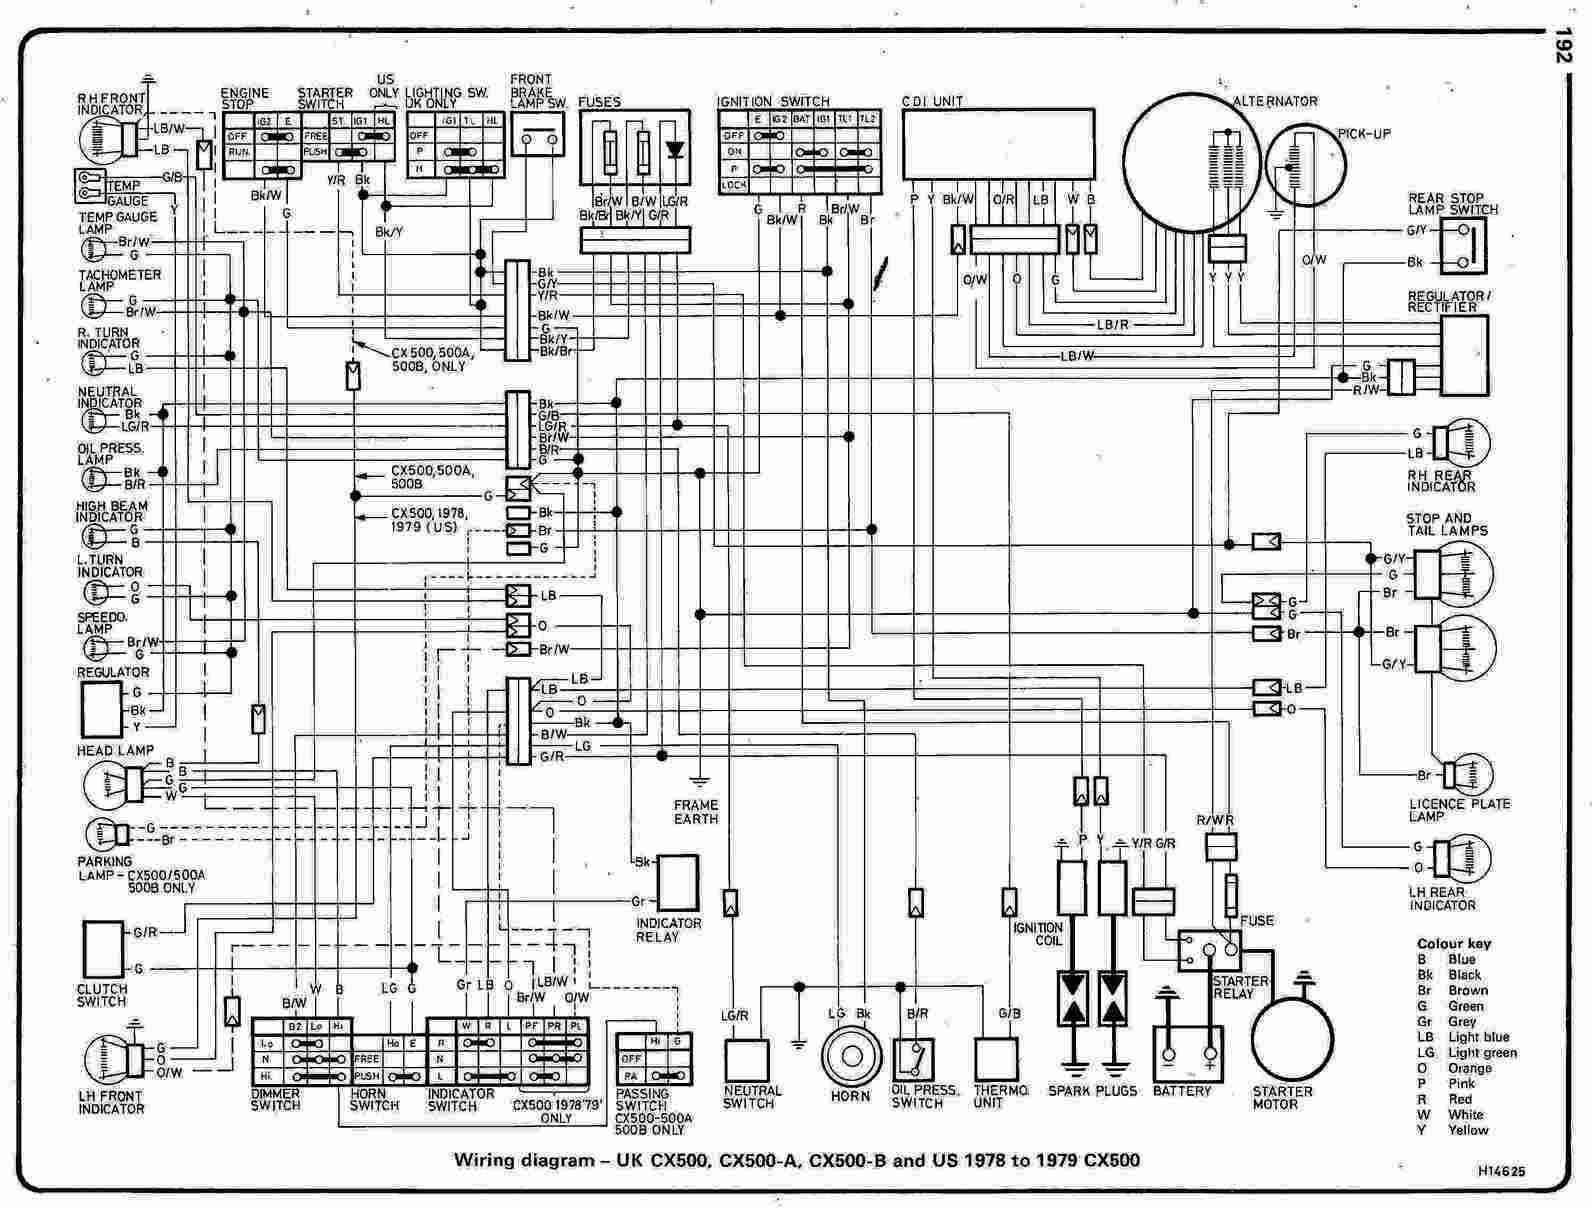 honda cx500 motorcycle 1978 1979 complete wiring diagram all about rh diagramonwiring blogspot com 1979 corvette wiring diagram 1979 mustang wiring diagram